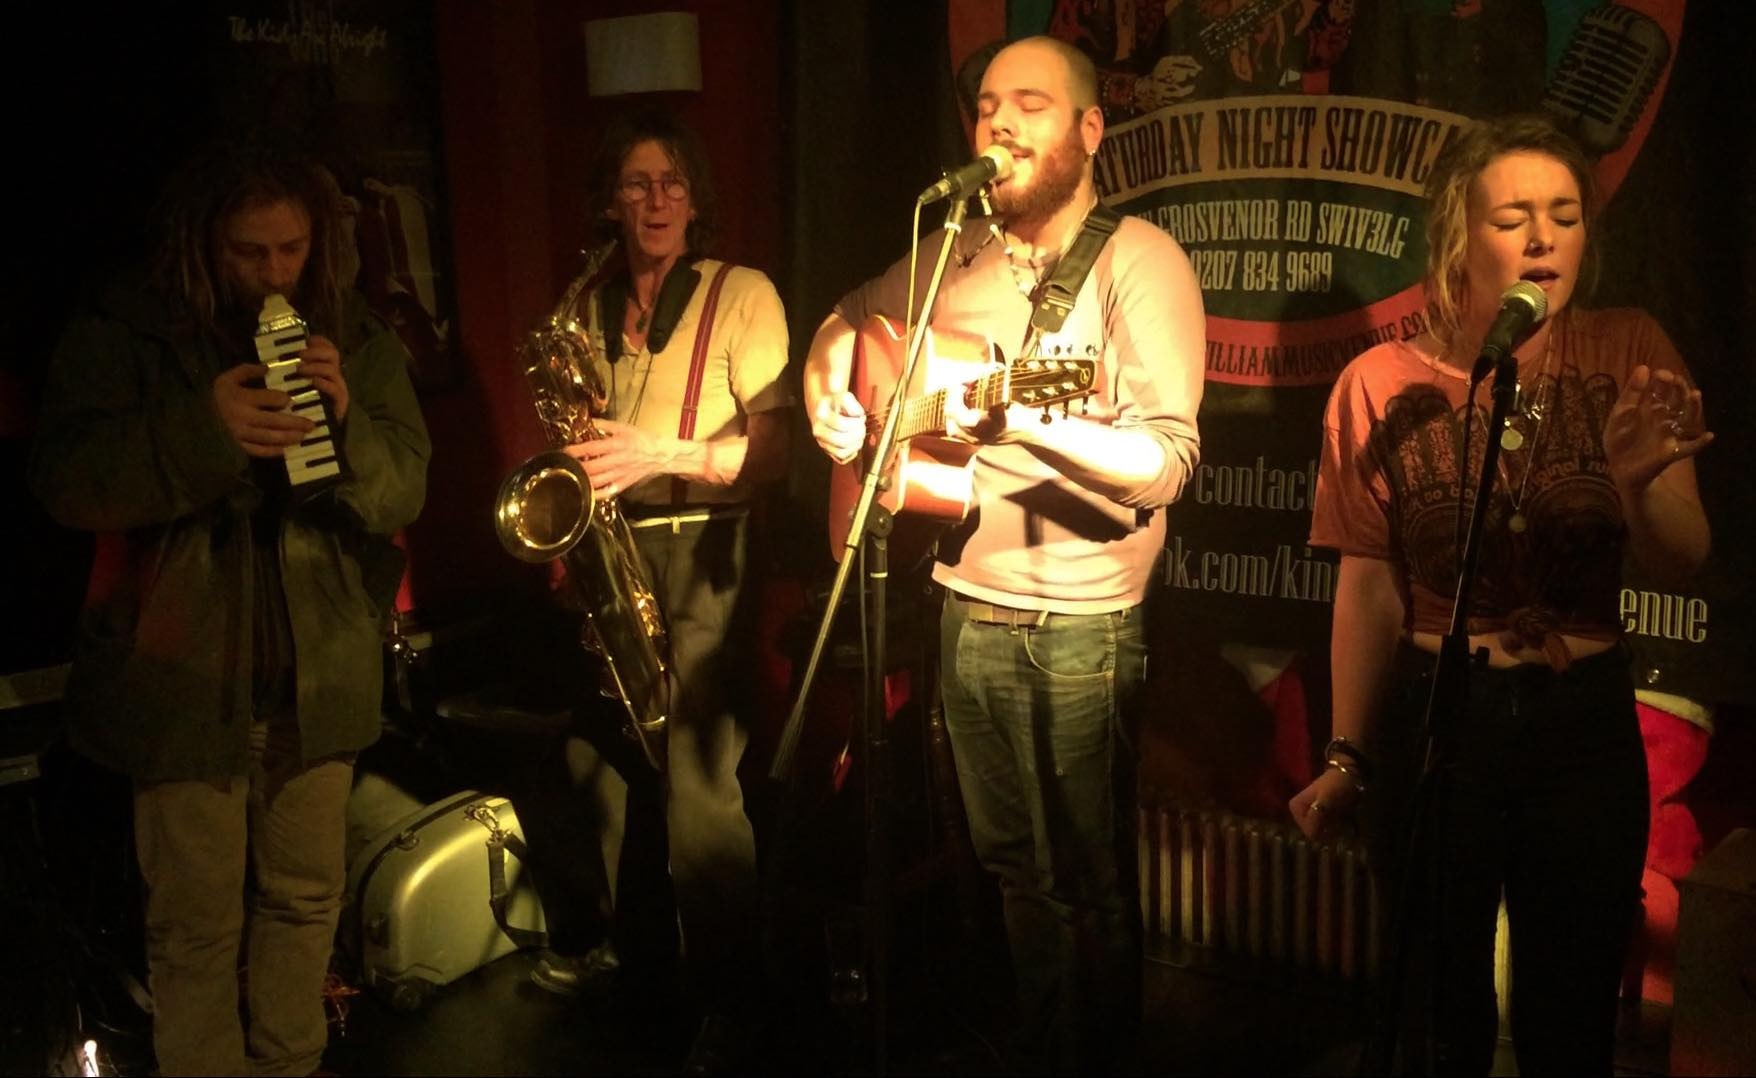 Jam with Chelsea Bridget and friends at King William IV - London 12/2014